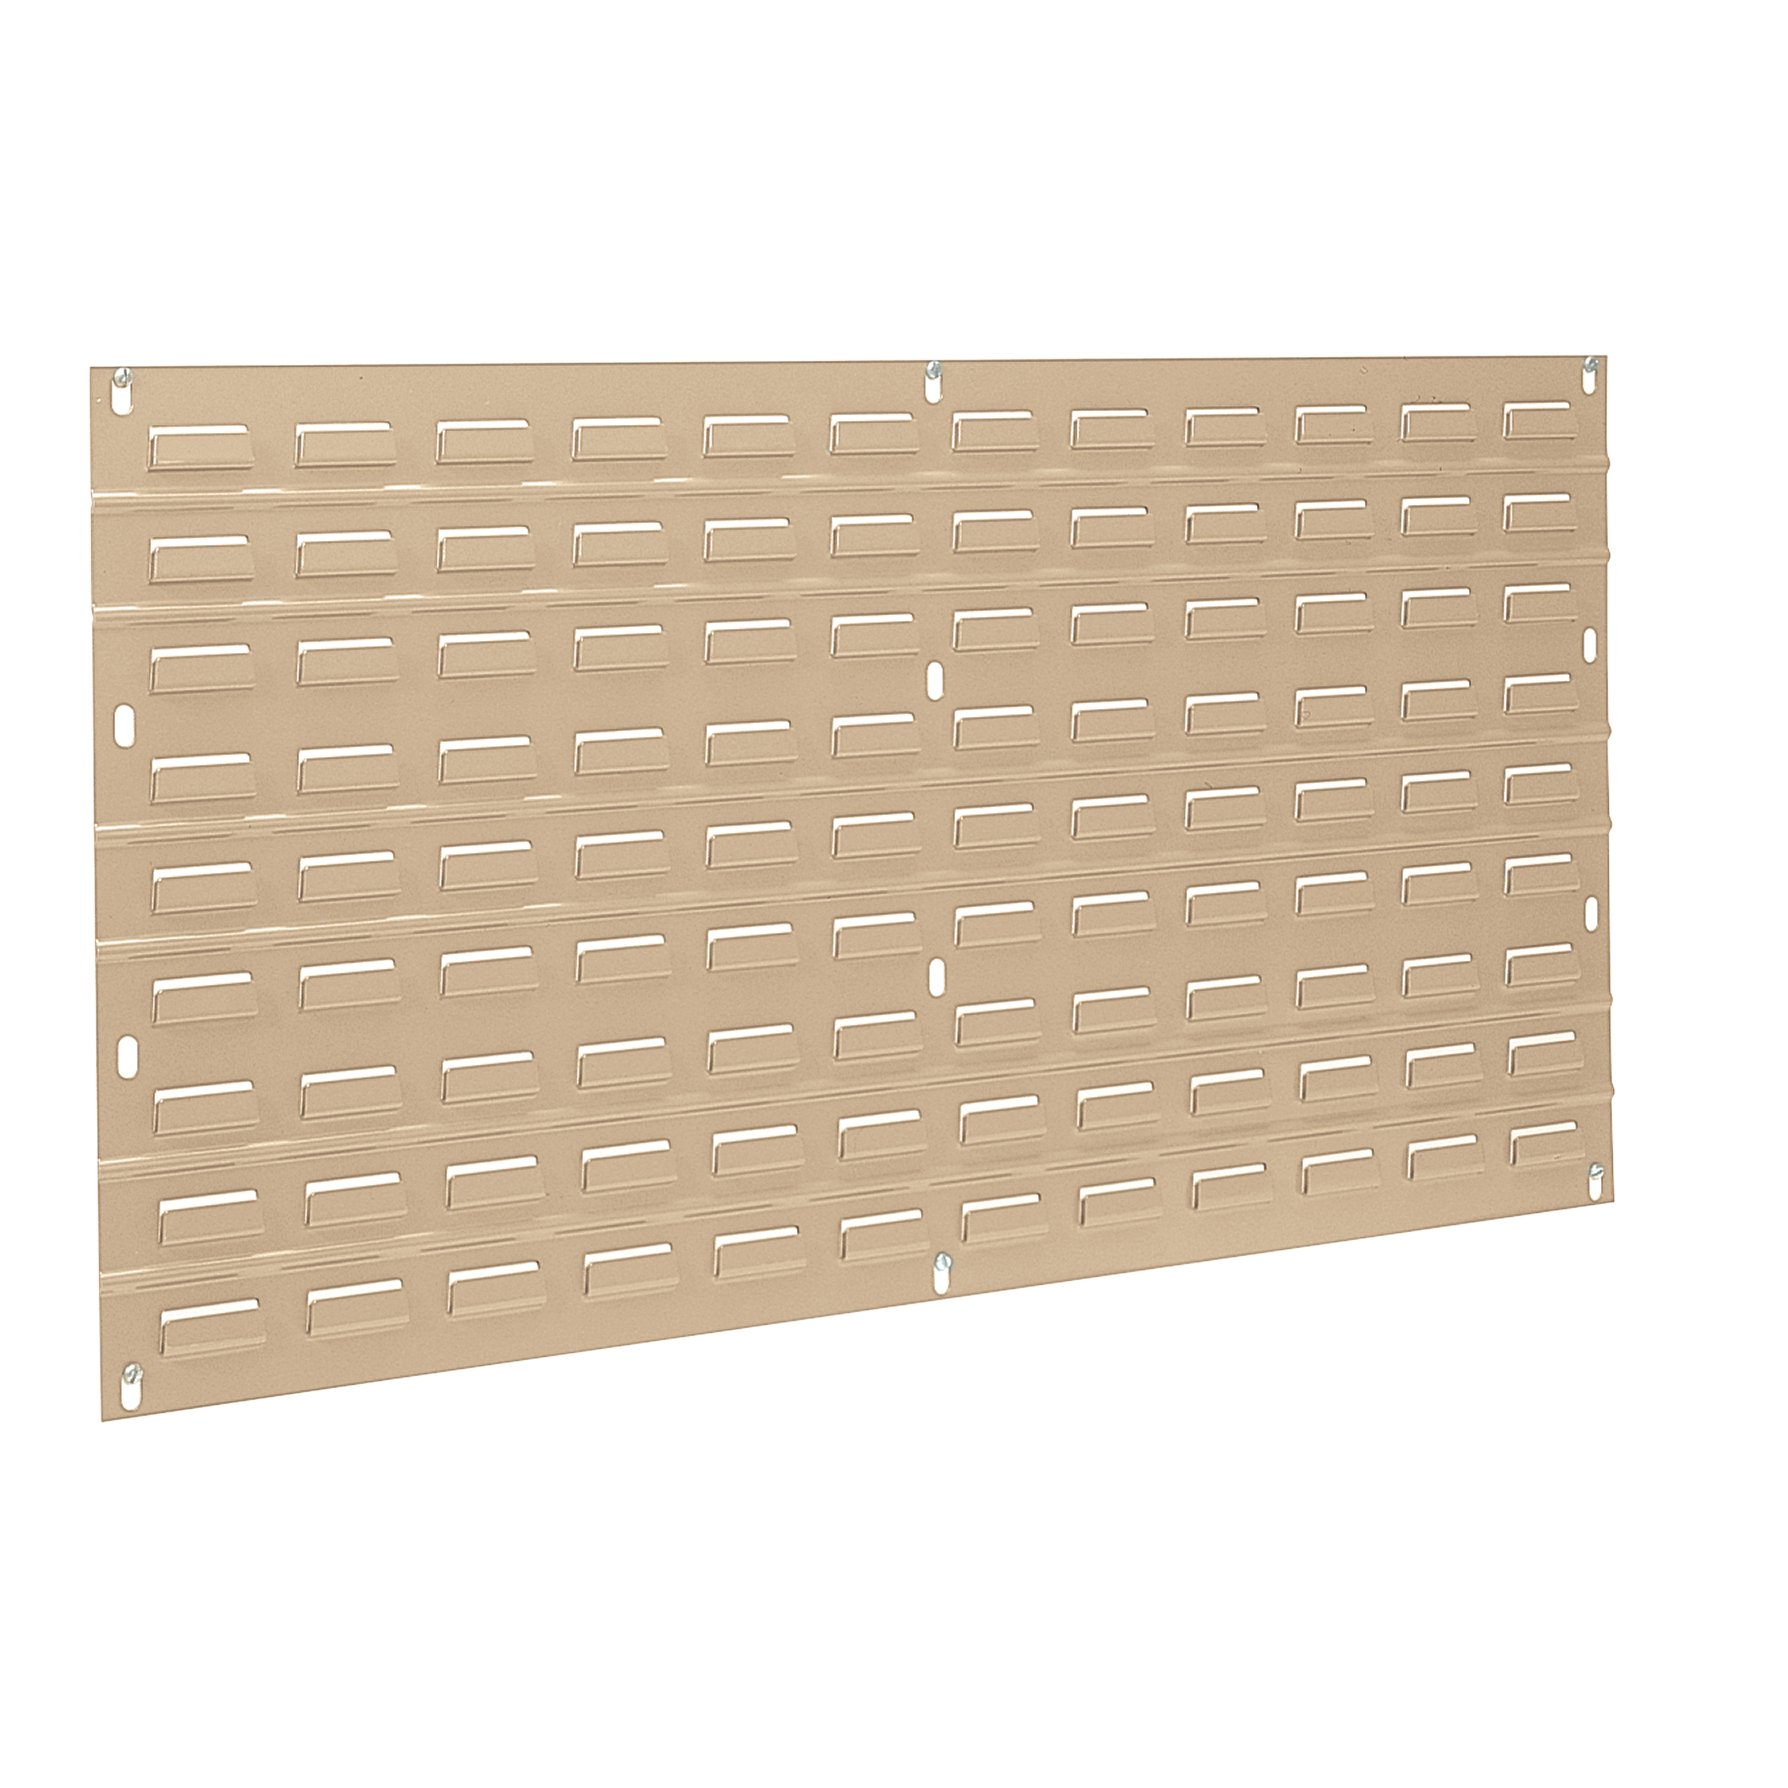 Akro-Mils 30636 36-Inch W x 19-Inch H Powder Coated Steel Louvered Steel Panel for mounting AkroBins, Beige, Case of 4